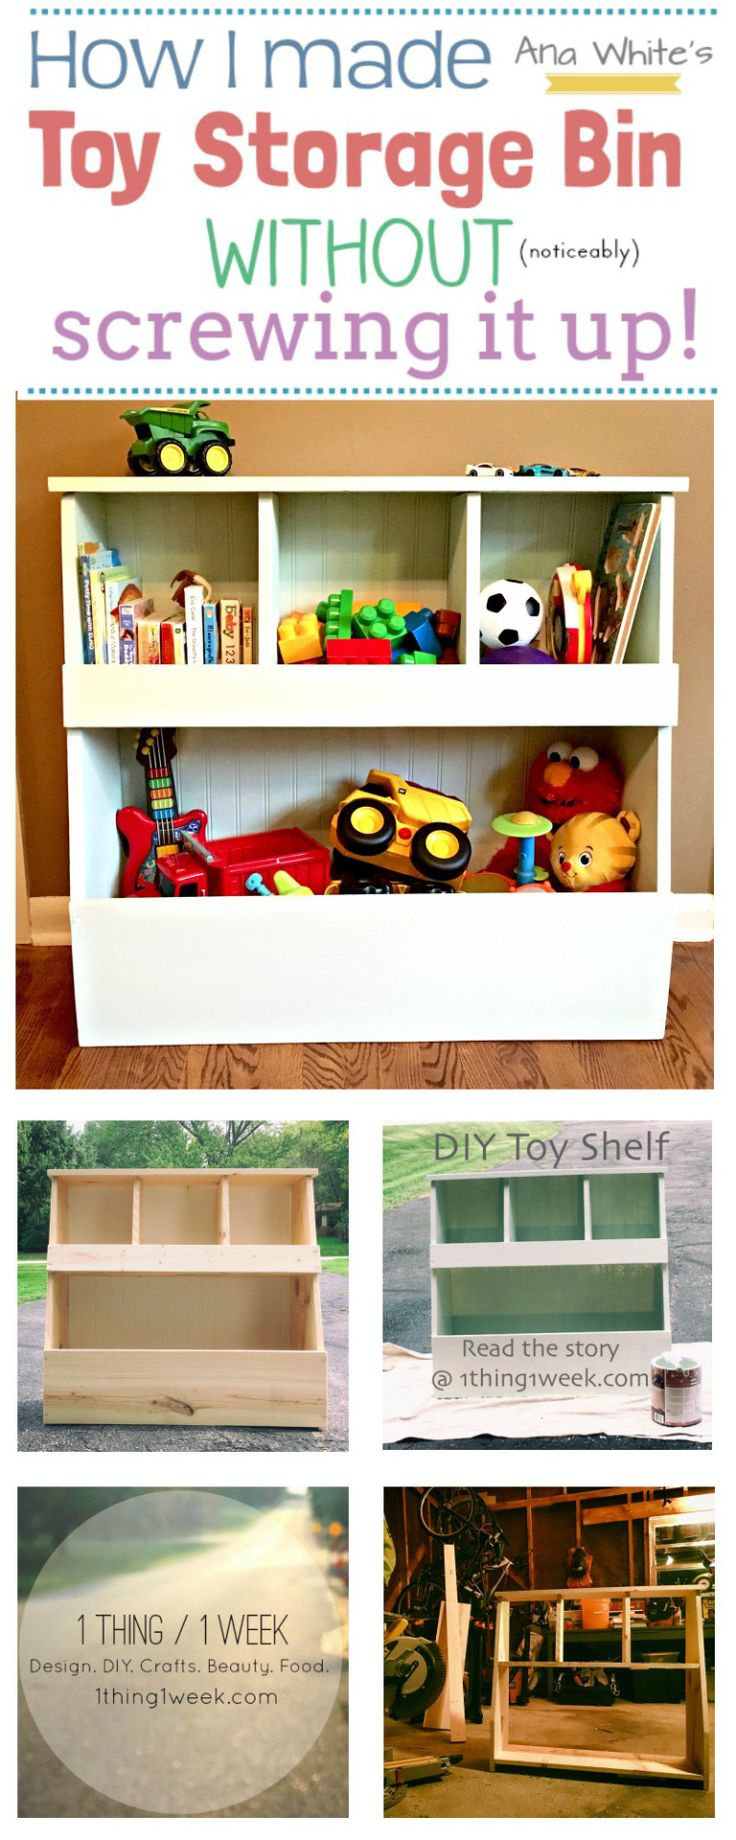 Toys toy boxes and fire trucks on pinterest - The Challenge To Build A Toy Storage Bin For Lucas S New Big Boy Room He S 2 And He Has Tons Of Toys My Inspiration I Heard About Ana White For The